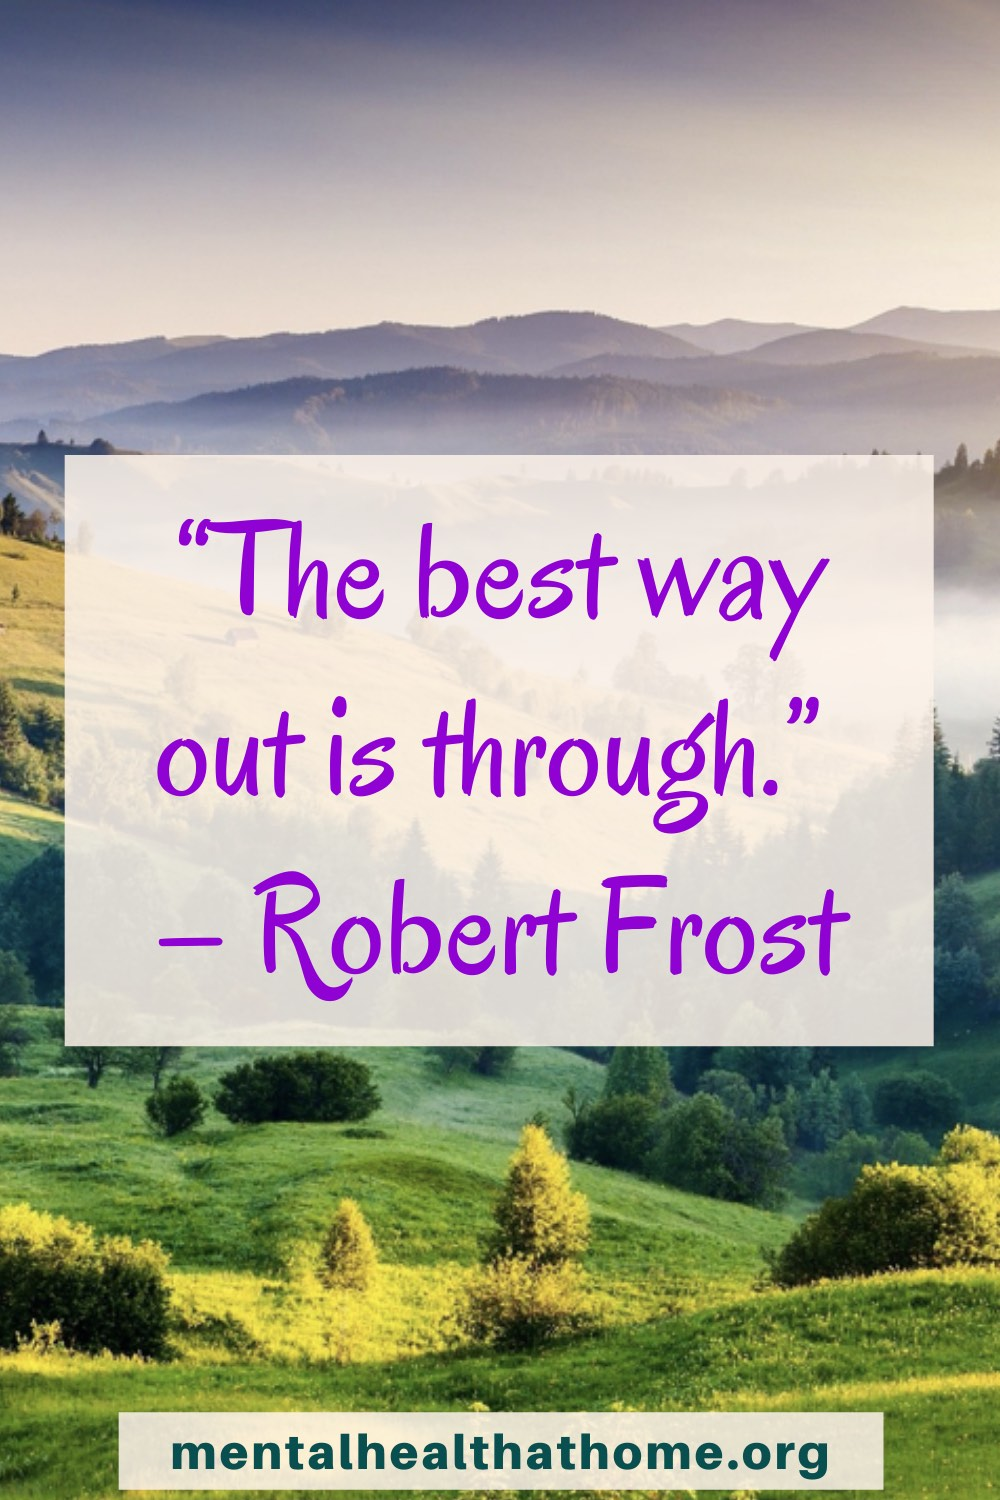 Robert Frost quote: the best way out is through